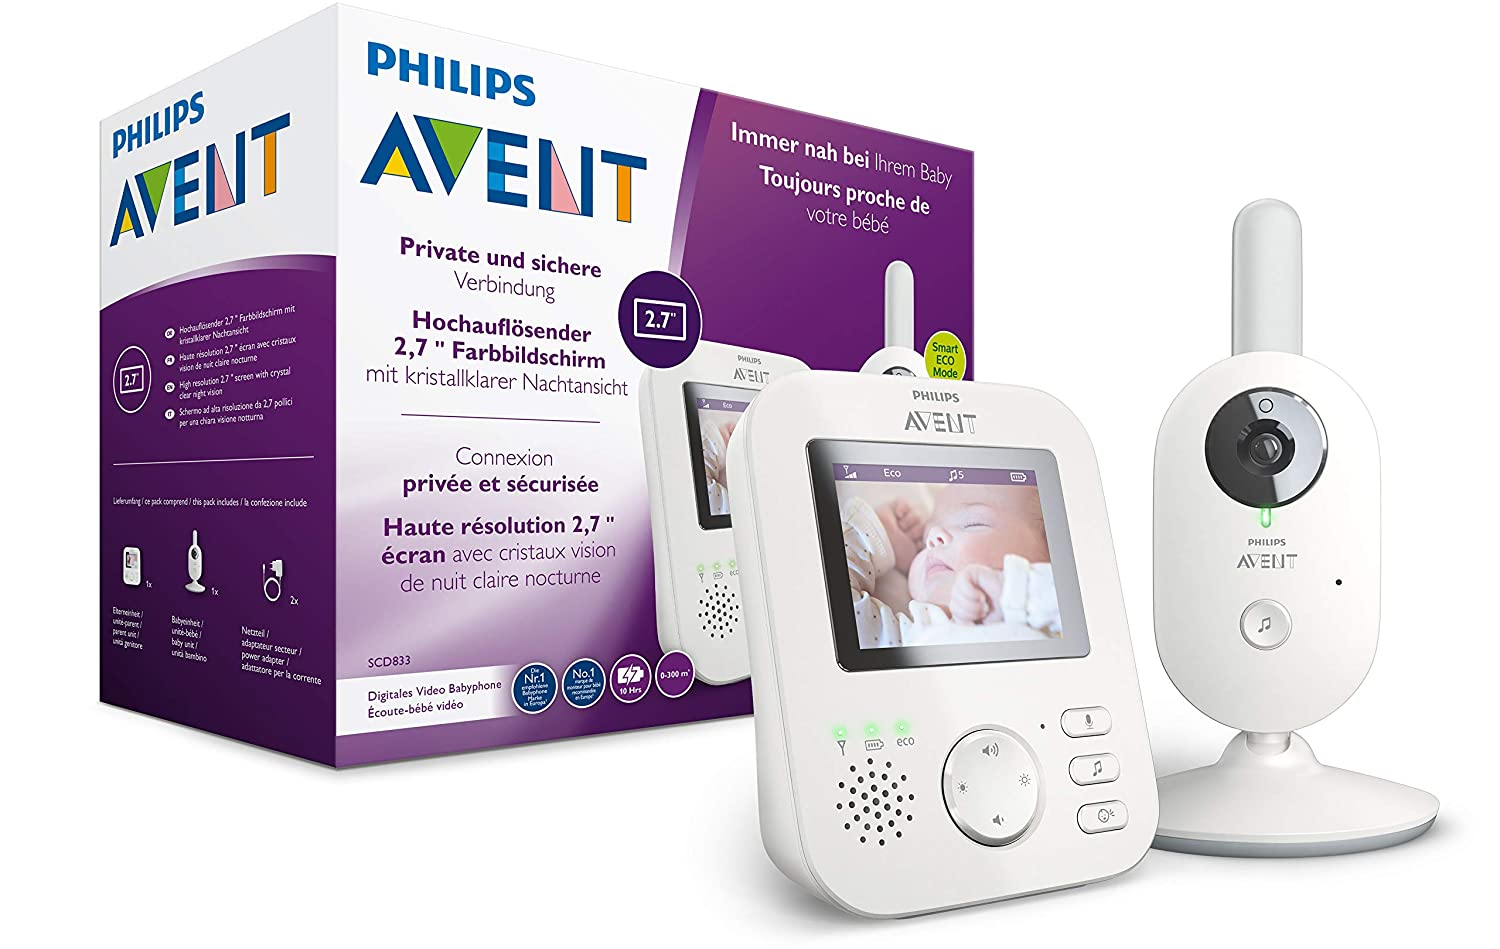 [amazon.de] Philips AVENT SCD833/26 video babyphone za 145,20€ umjesto 180€